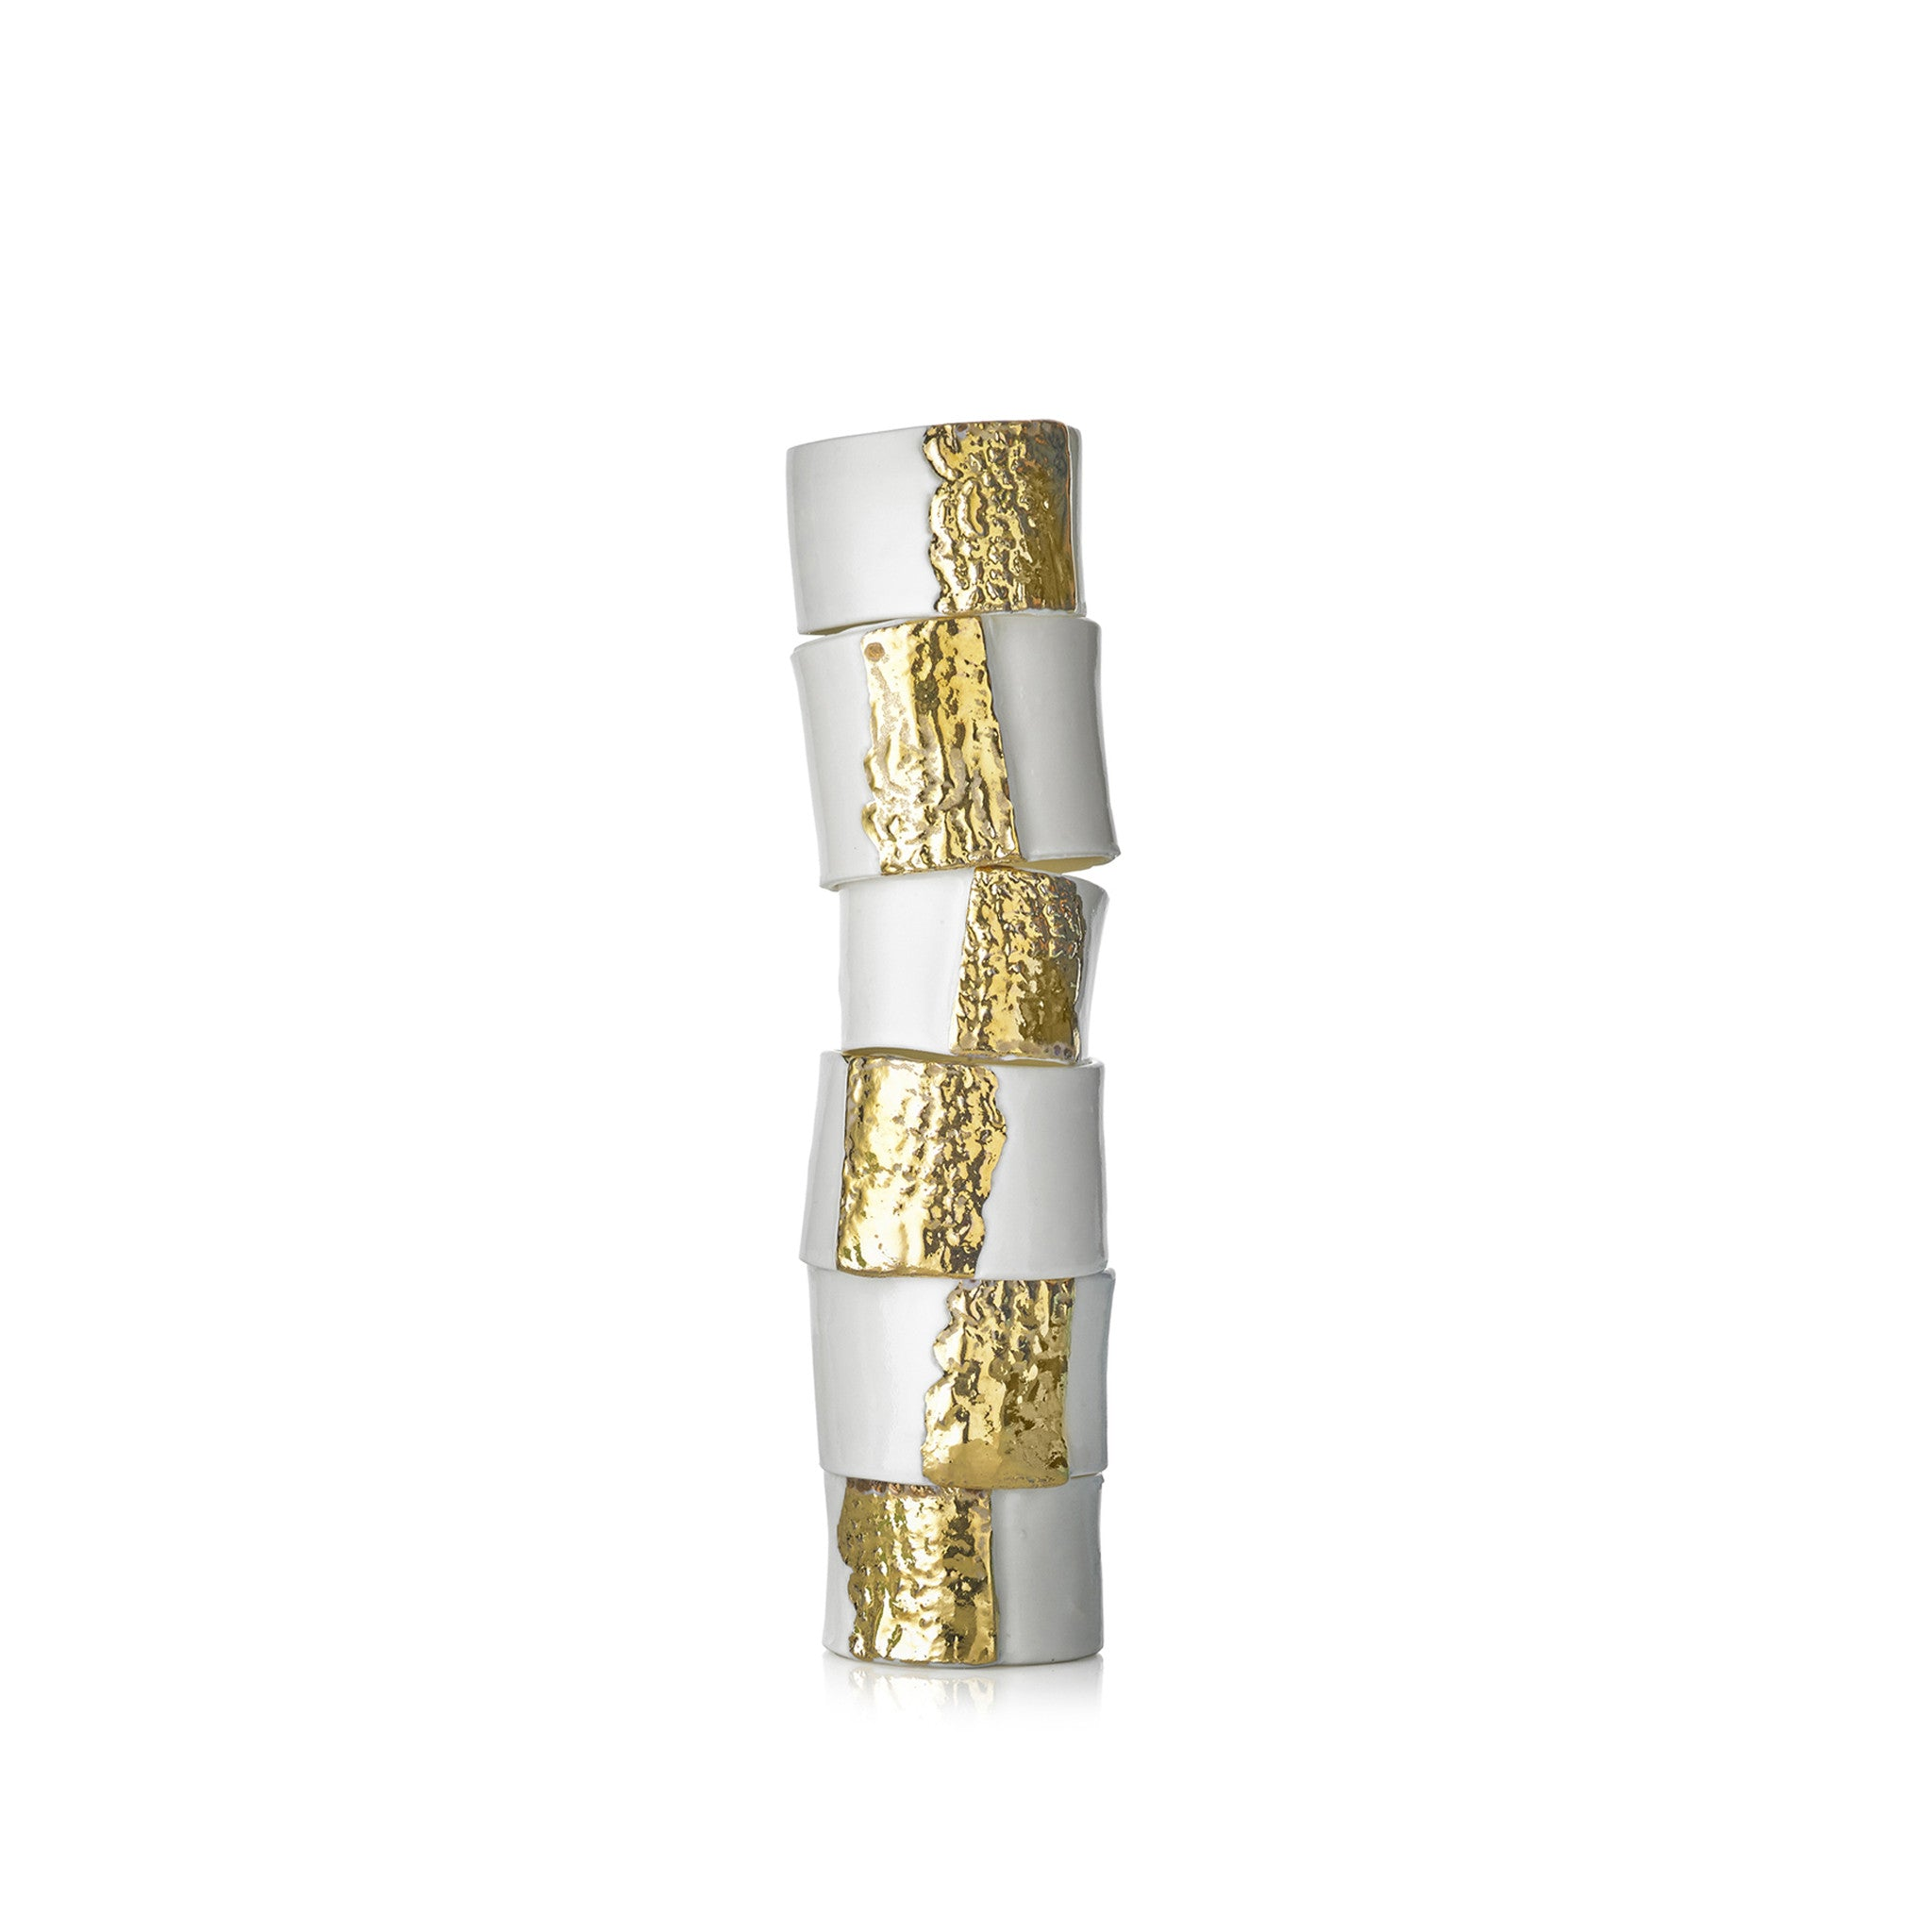 Embossed Porcelain Napkin Ring in Gold